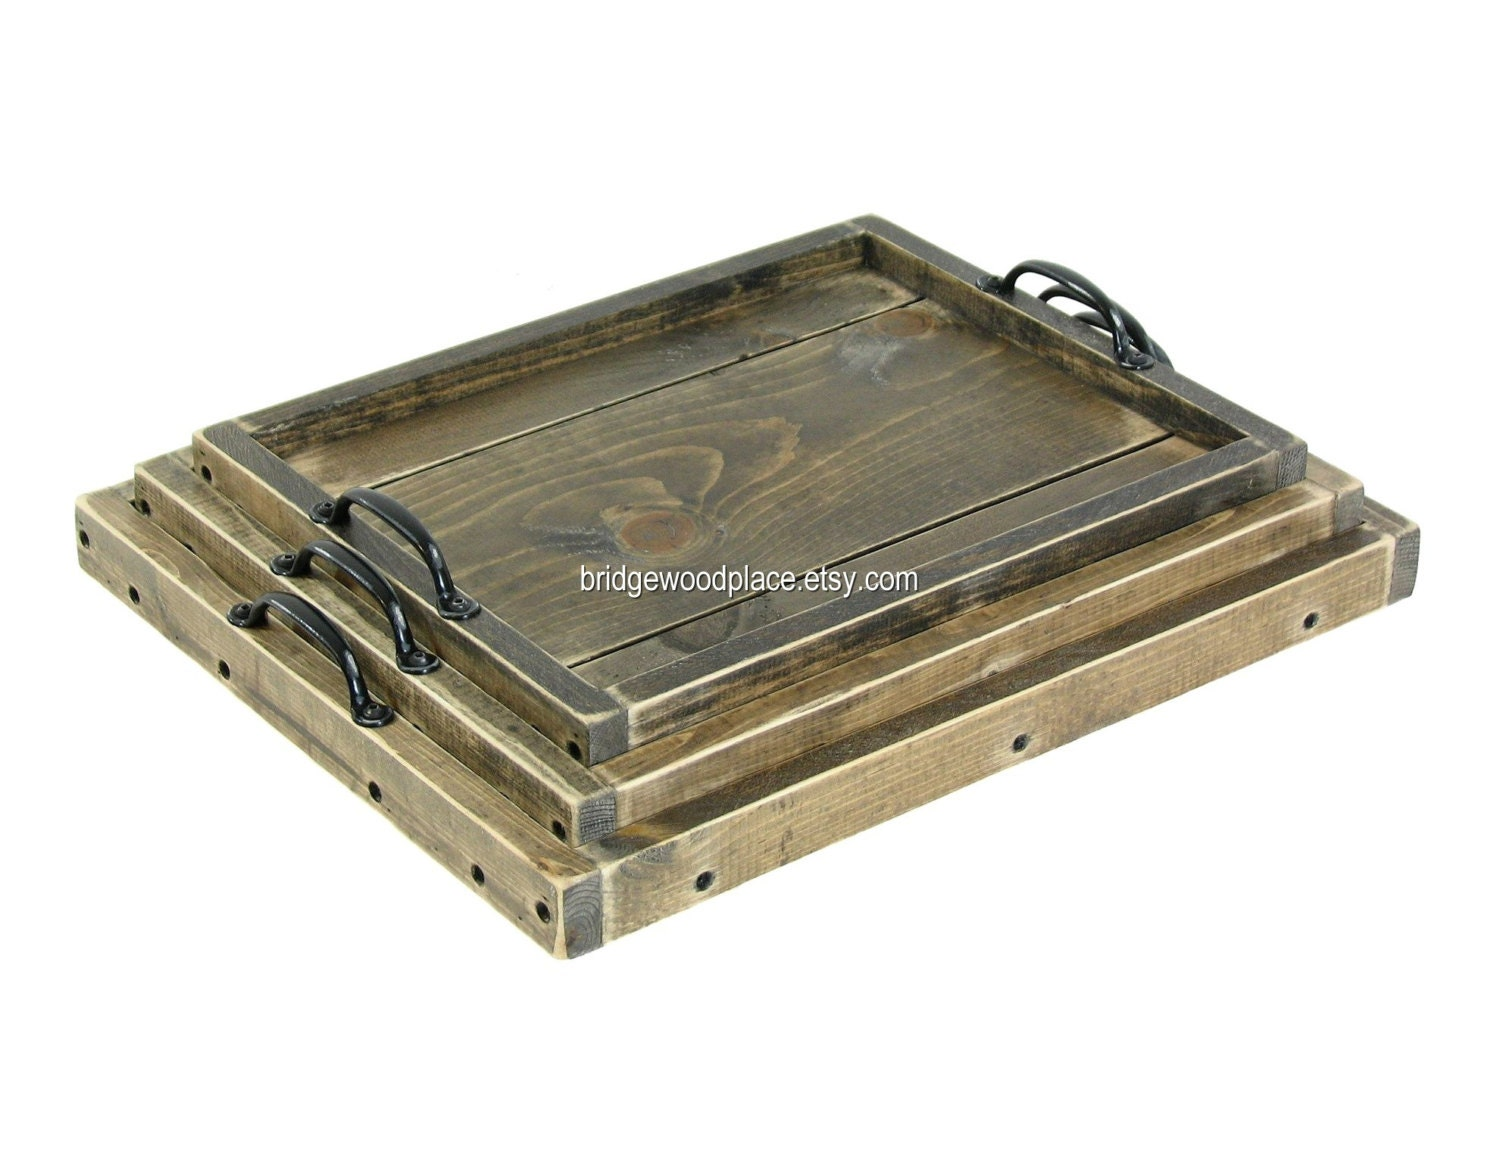 Serving Trays Nesting Ottoman Trays Wooden By Bridgewoodplace